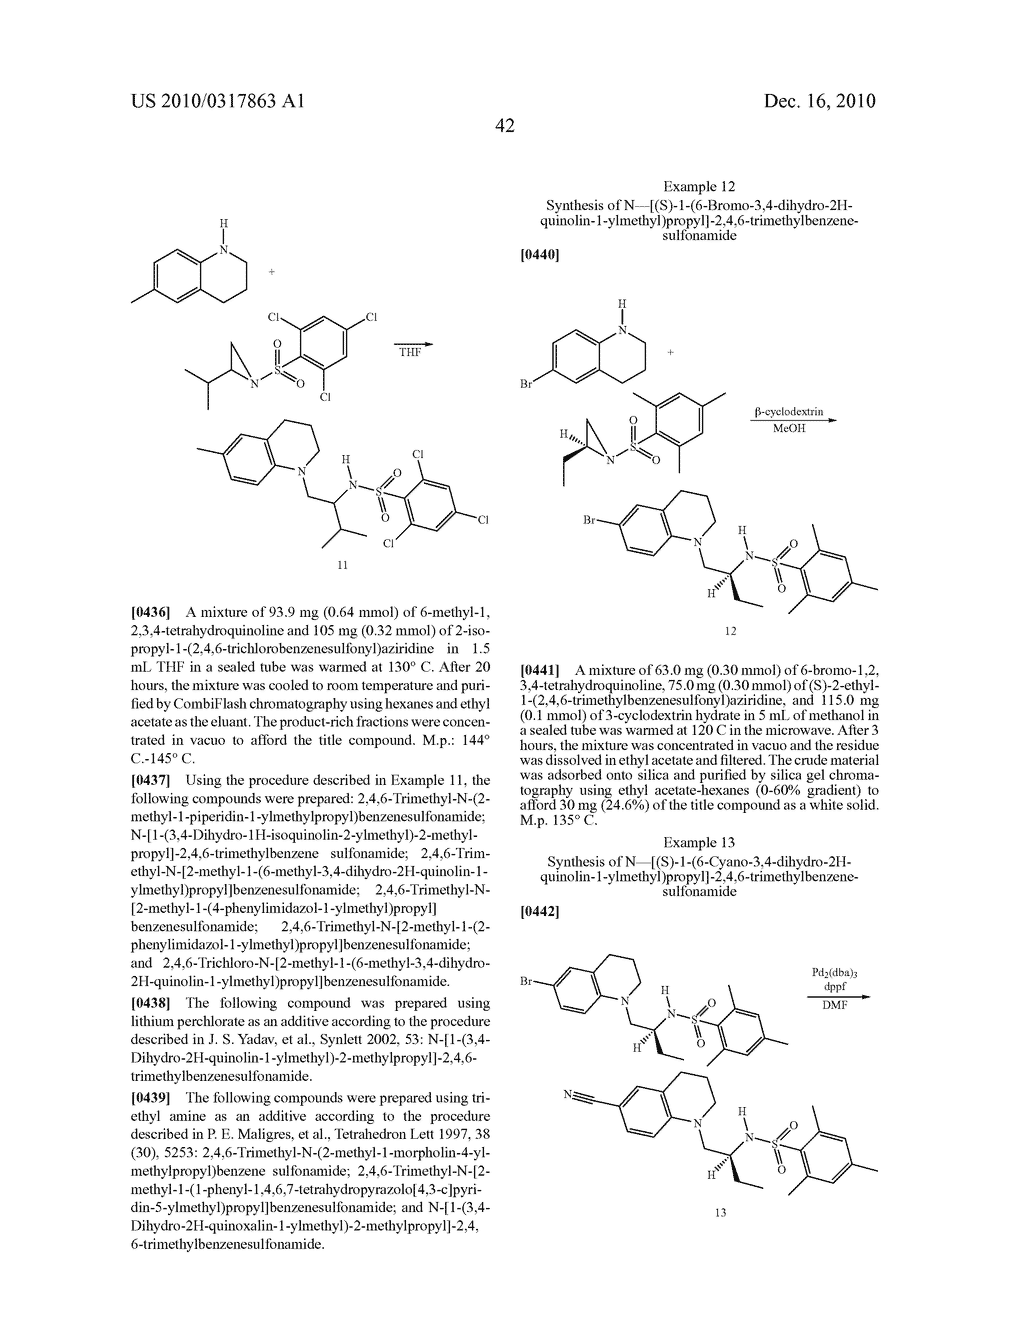 Glucocorticoid Mimetics, Methods of Making Them, Pharmaceutical Compositions and Uses Thereof - diagram, schematic, and image 43